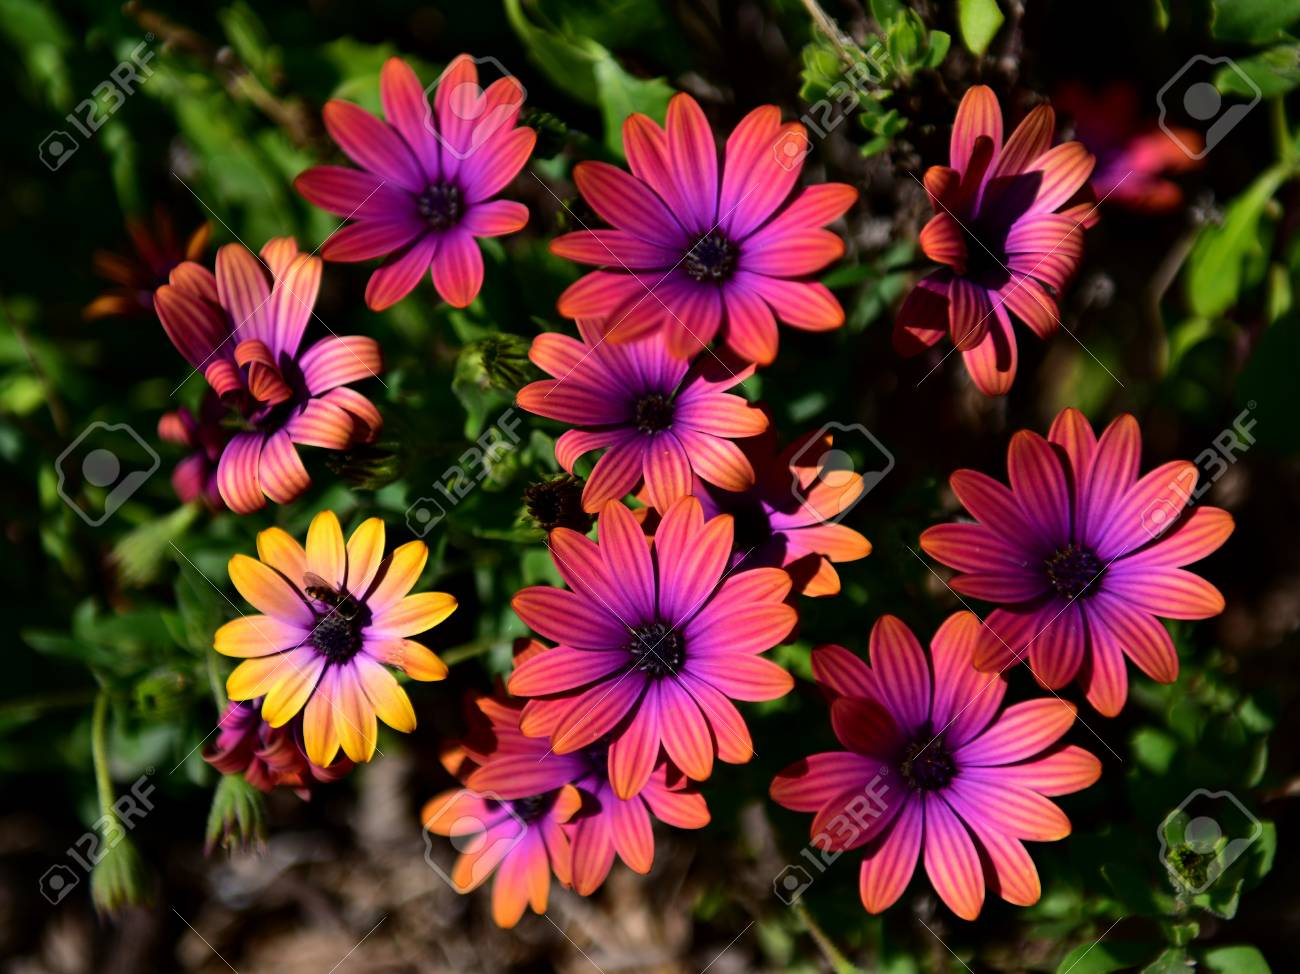 Vibrant pink flowers blooming in a garden in victoria australia stock photo vibrant pink flowers blooming in a garden in victoria australia izmirmasajfo